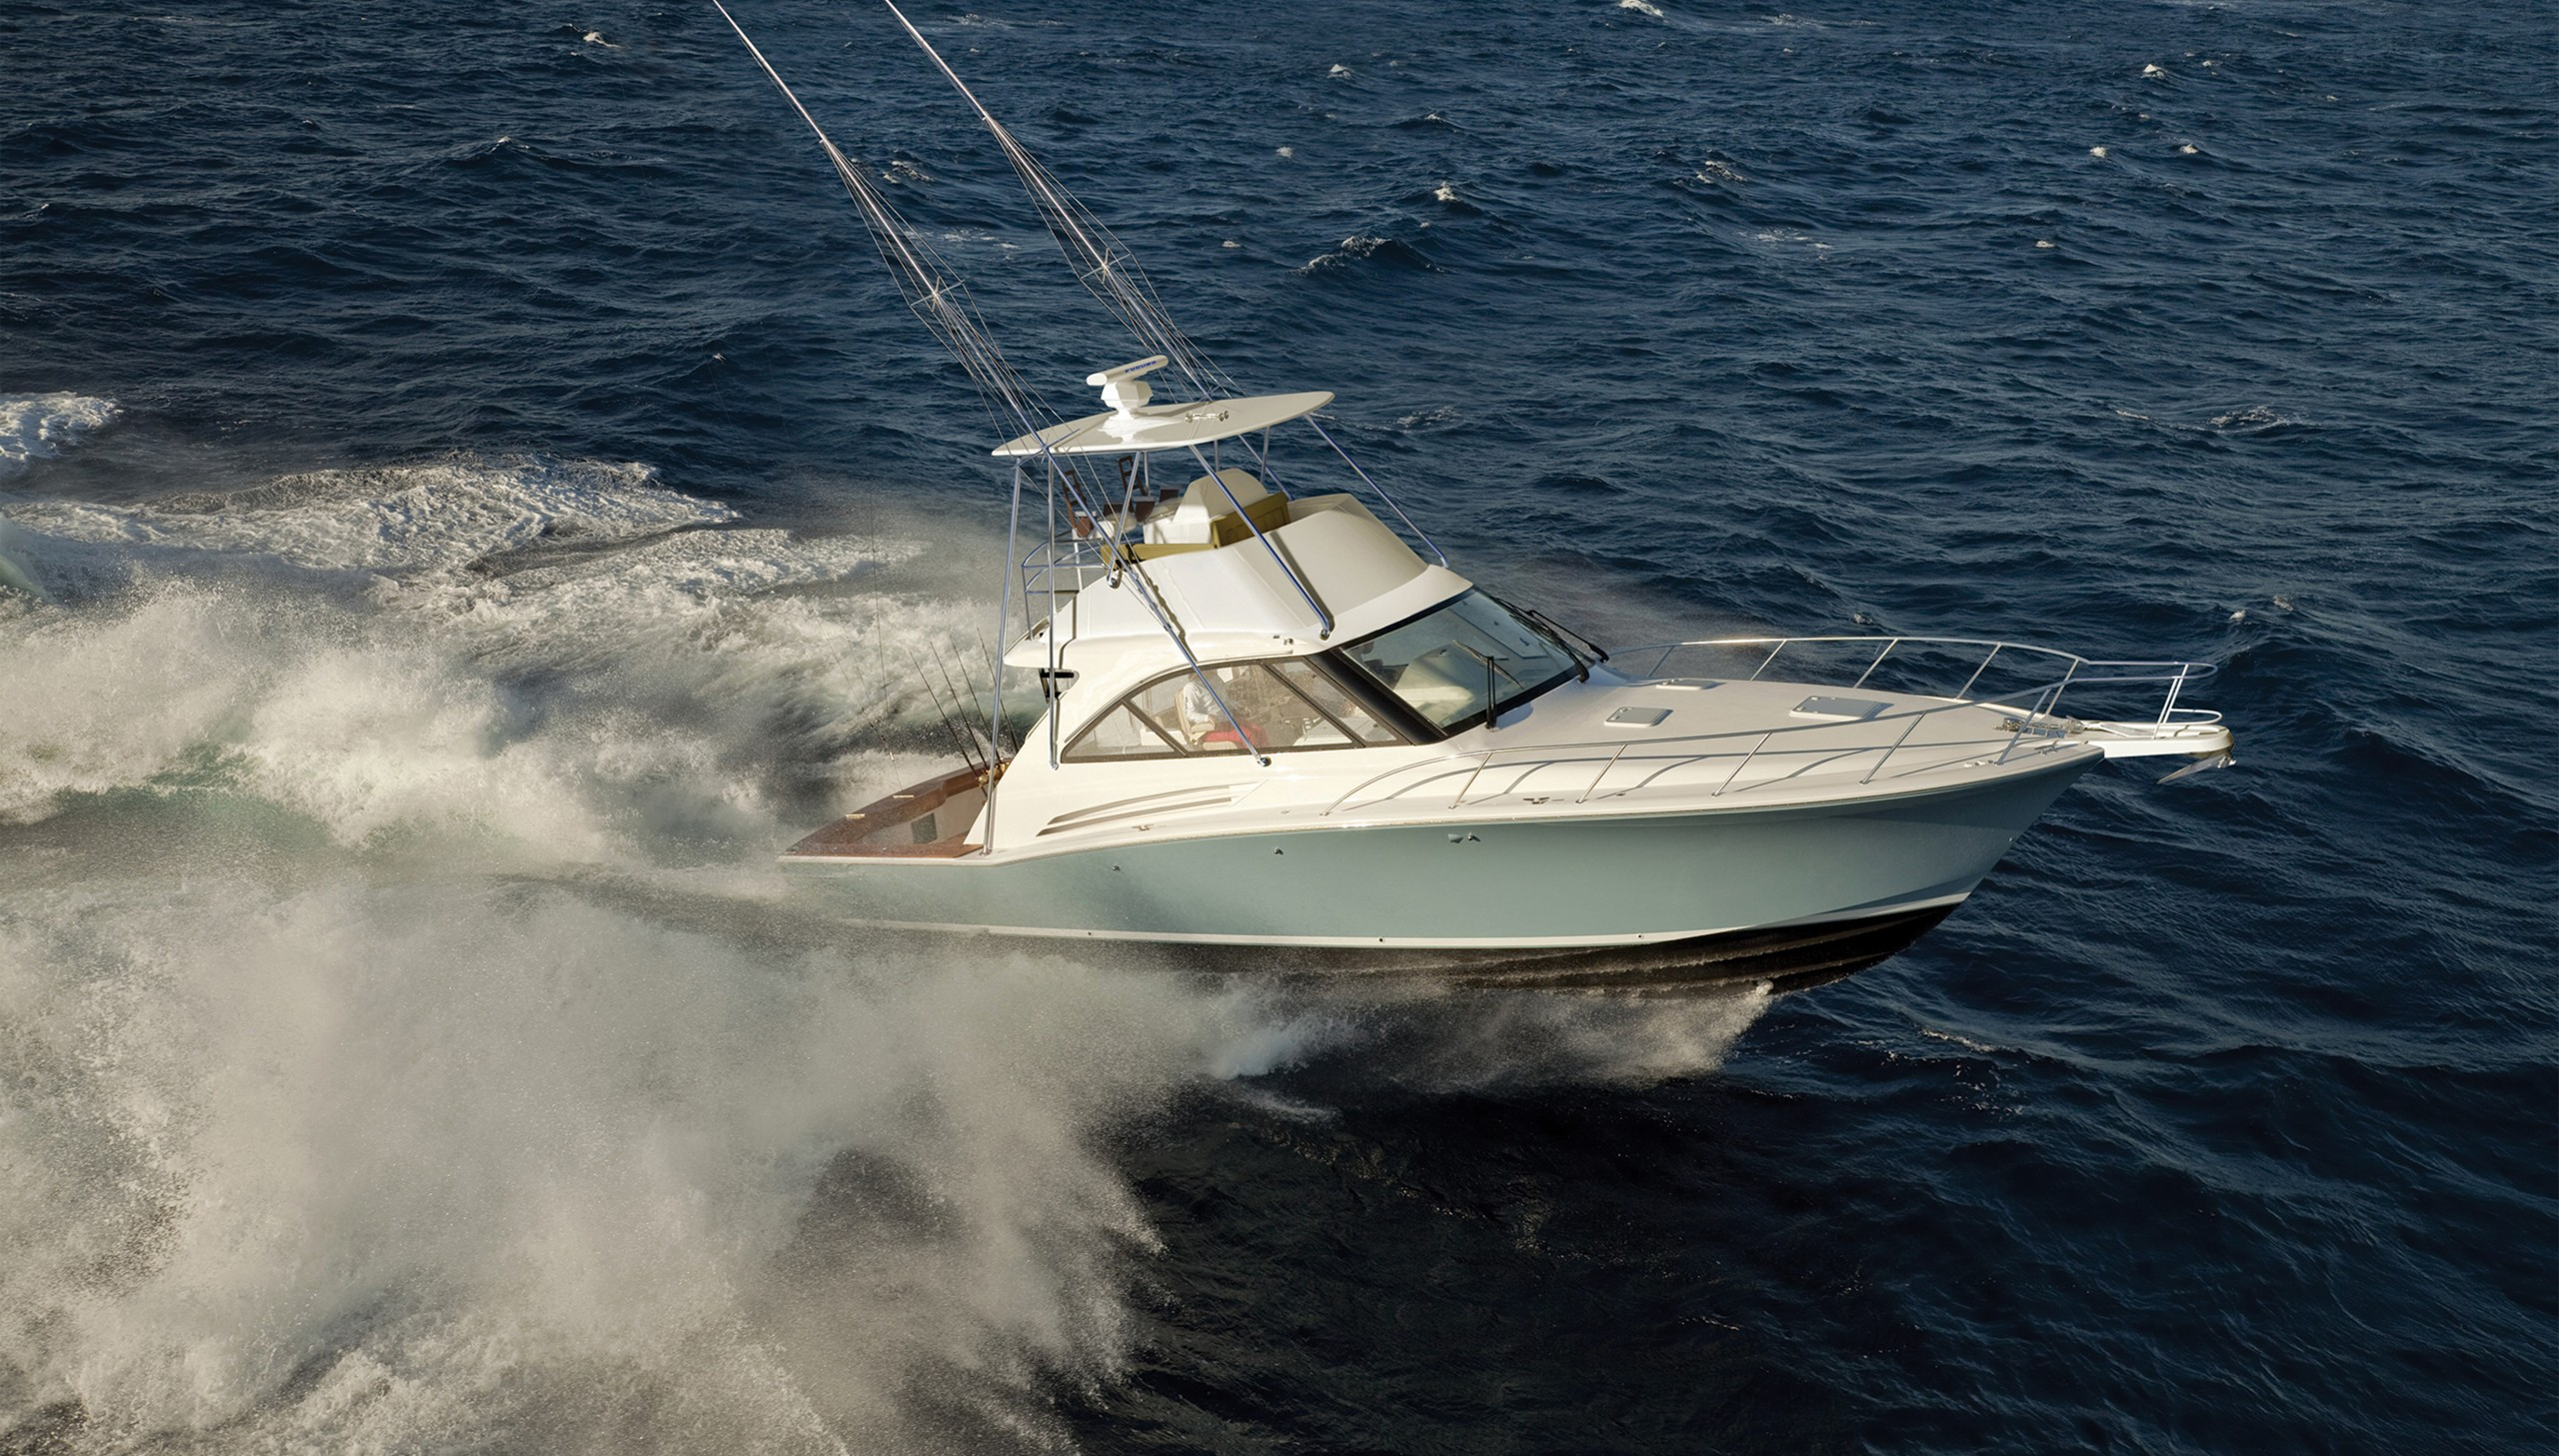 Hatteras 45 EX running on the ocean